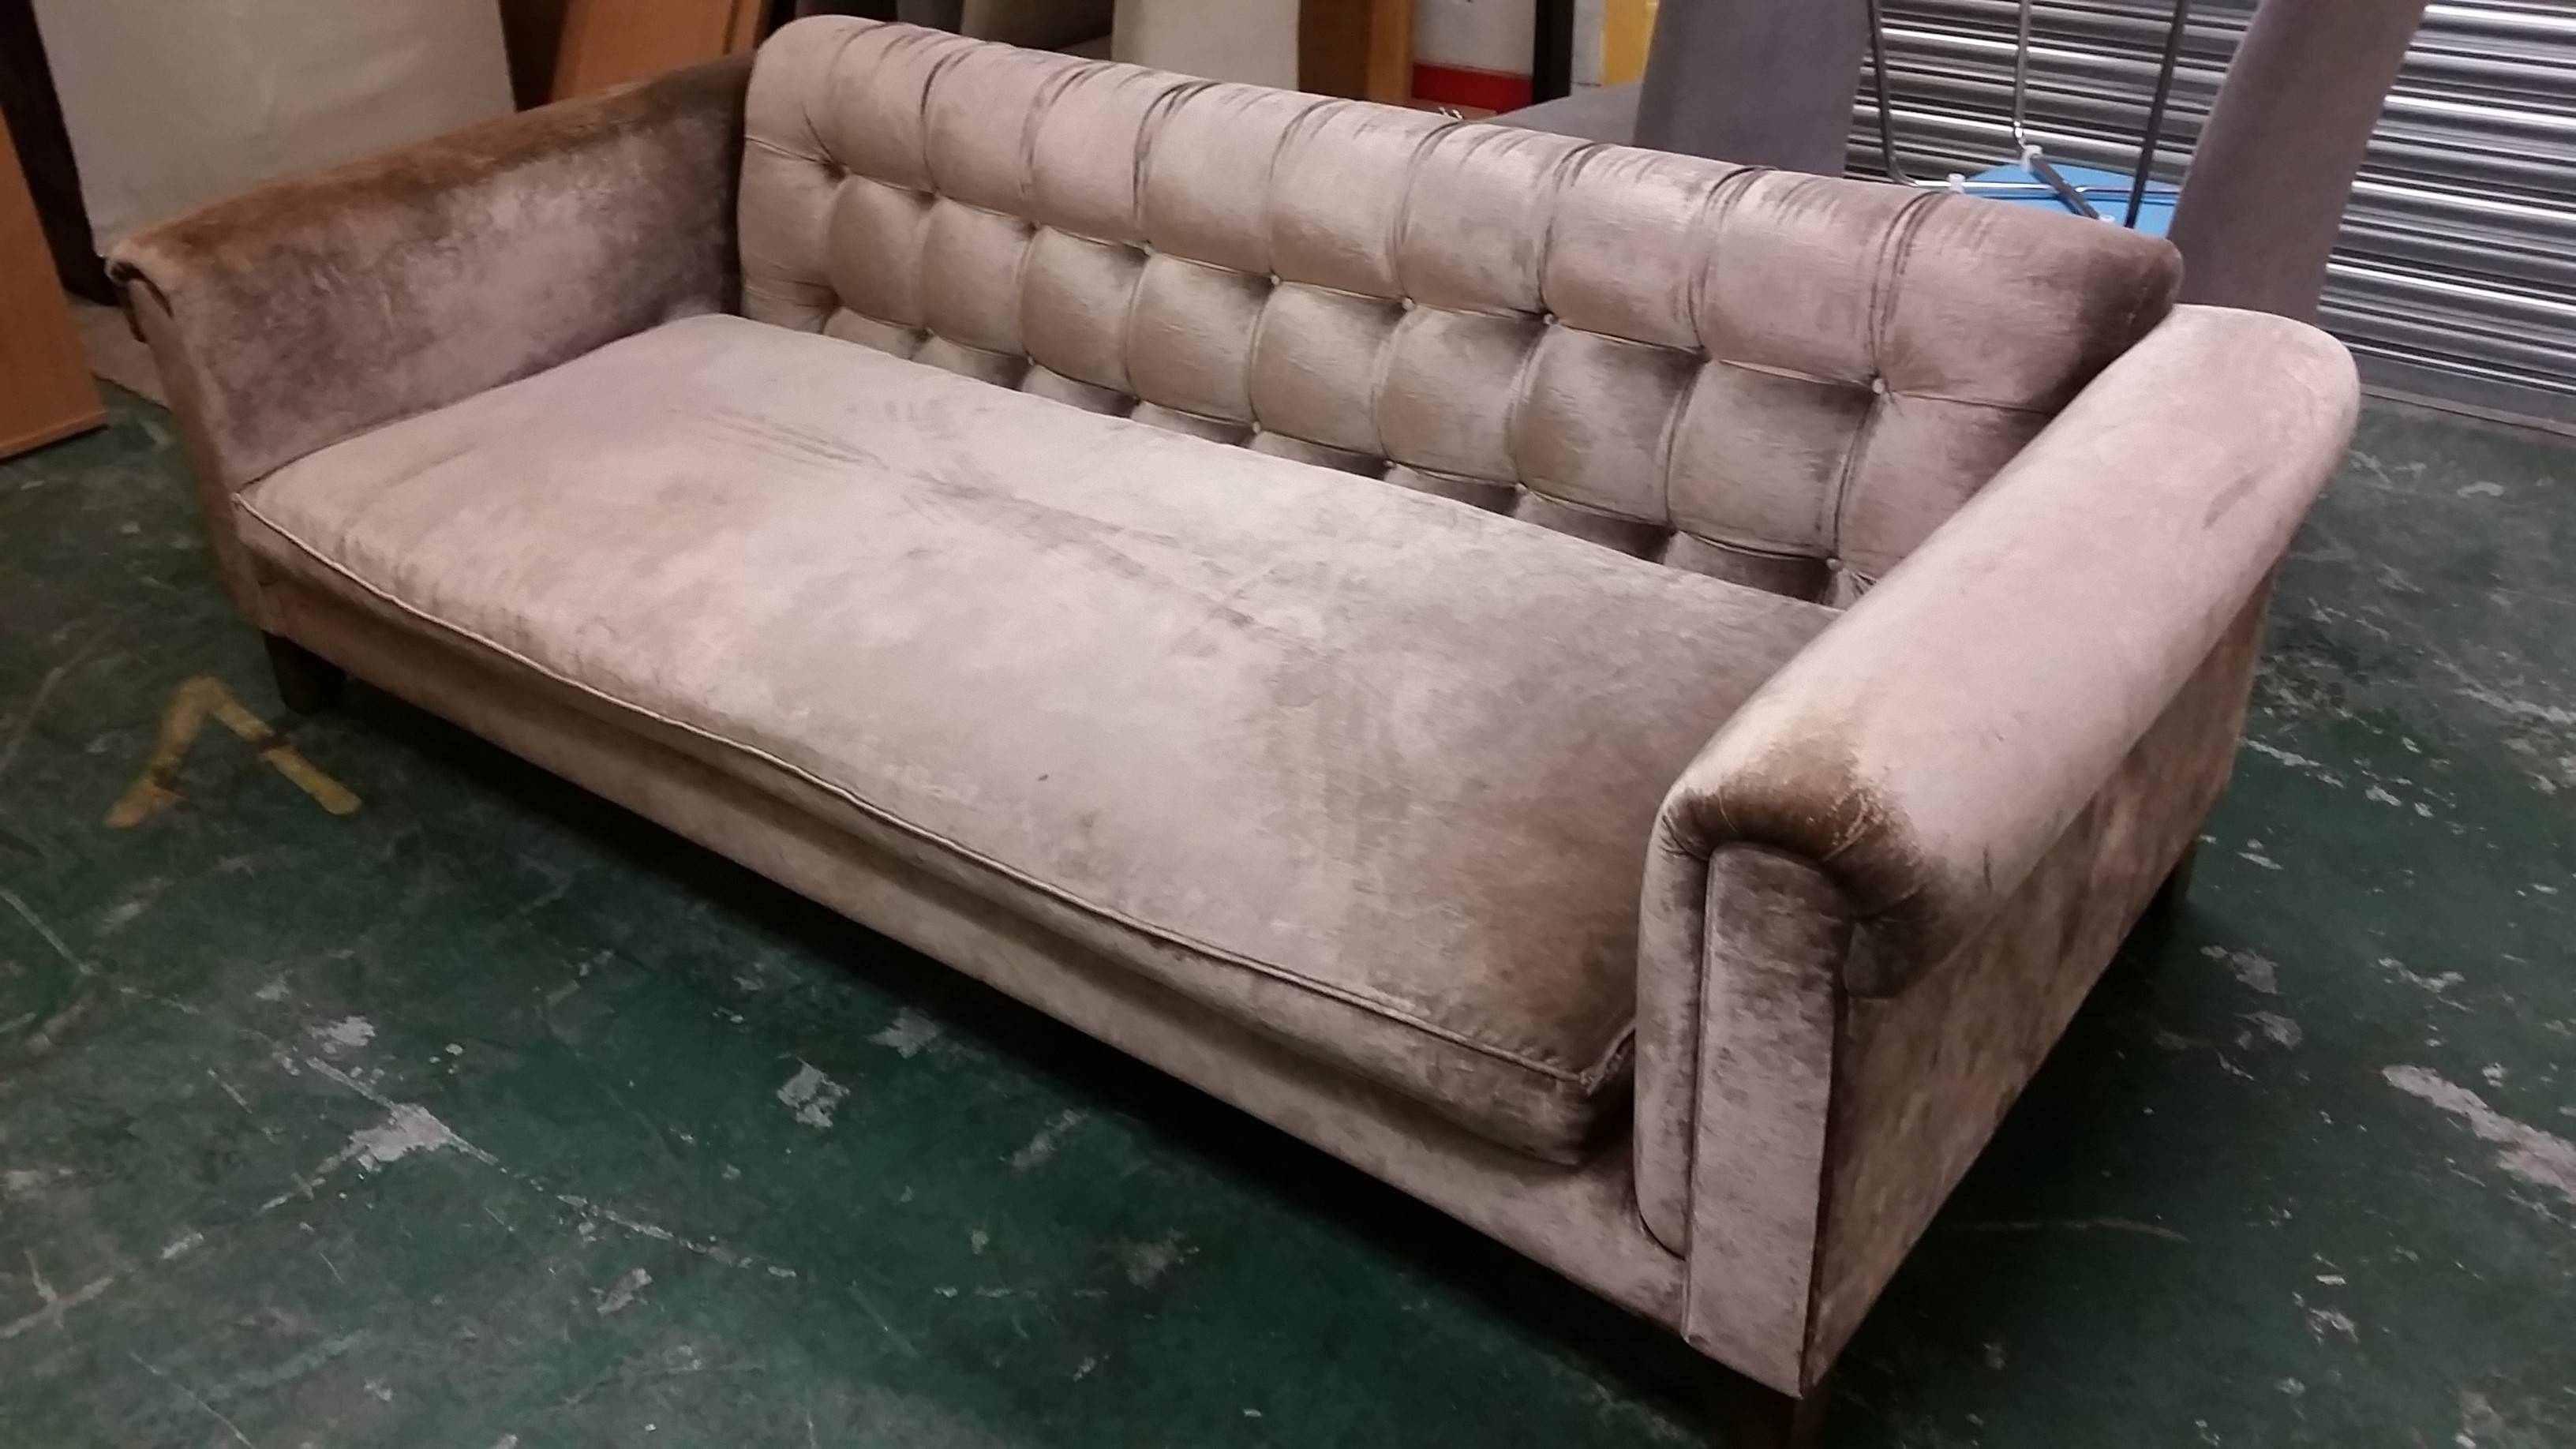 30 Inspirations of Manchester Sofas